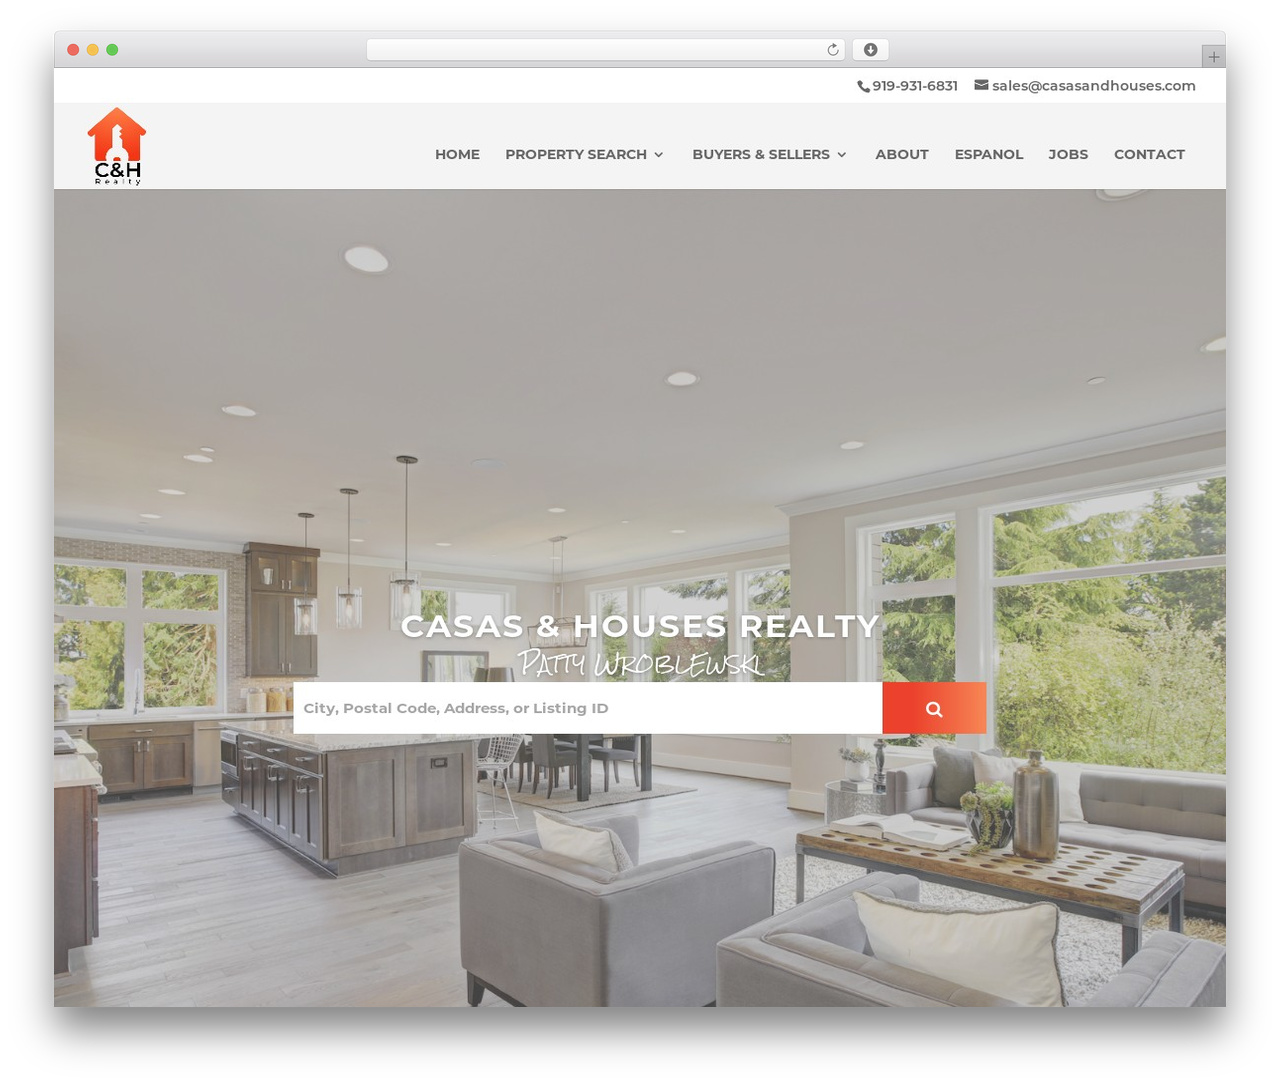 Divi WordPress theme - casasandhouses.com